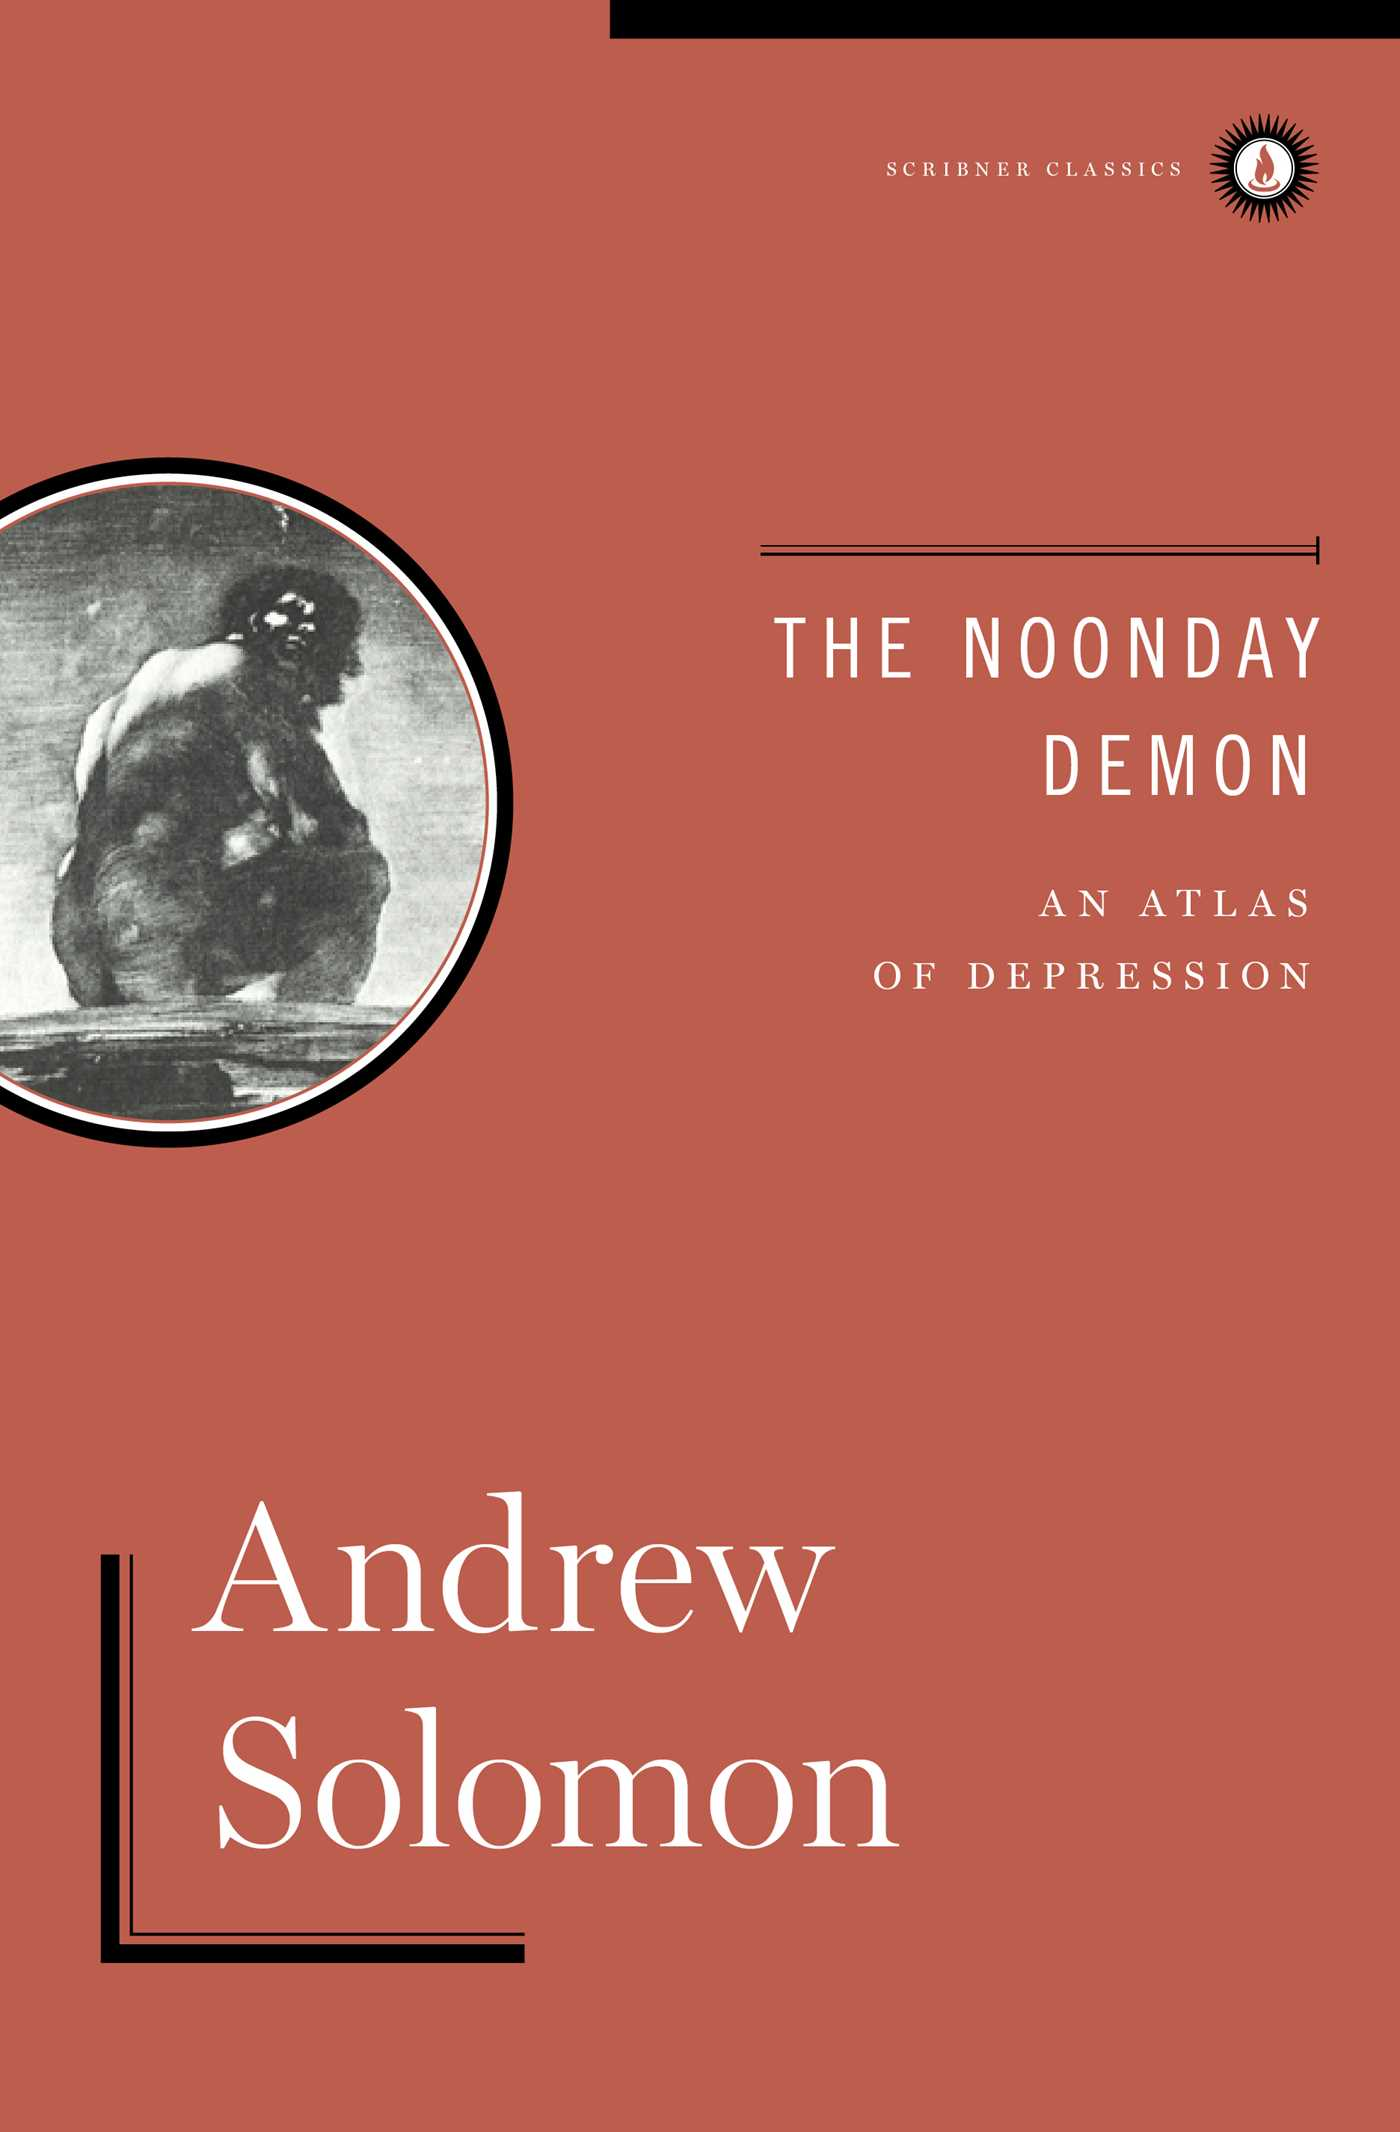 Noonday-demon-9781451611038_hr